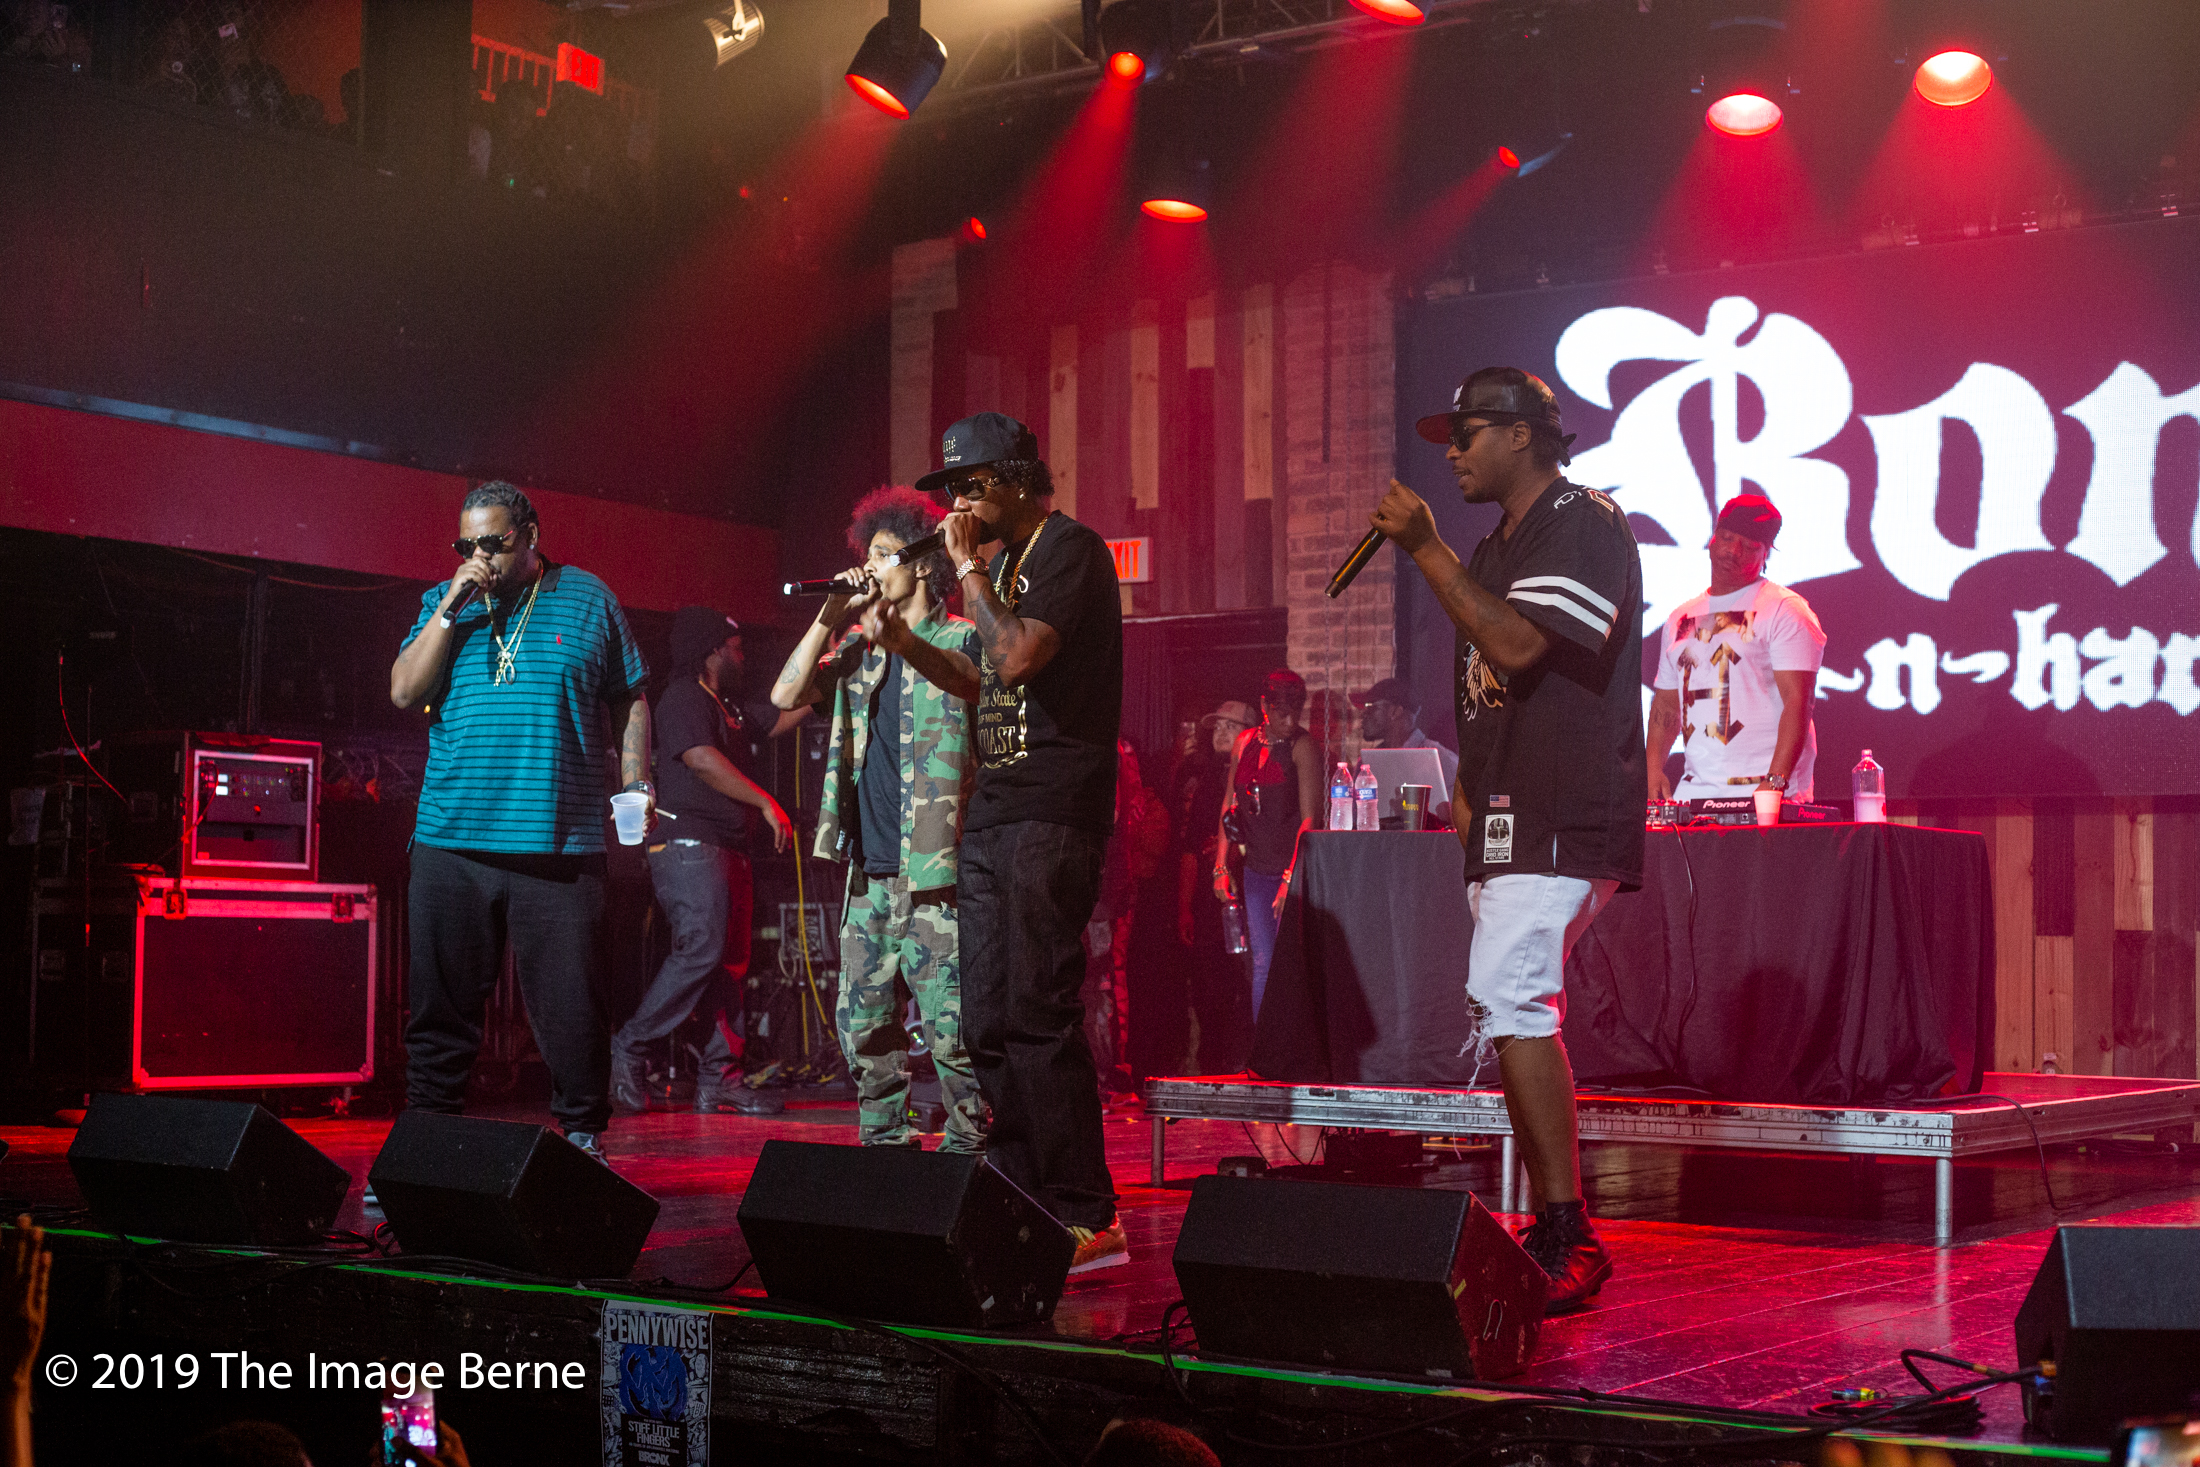 Krayzie Bone, Wish Bone, Flesh-N-Bone, Layzie Bone, and Bizzy Bone-003.jpg